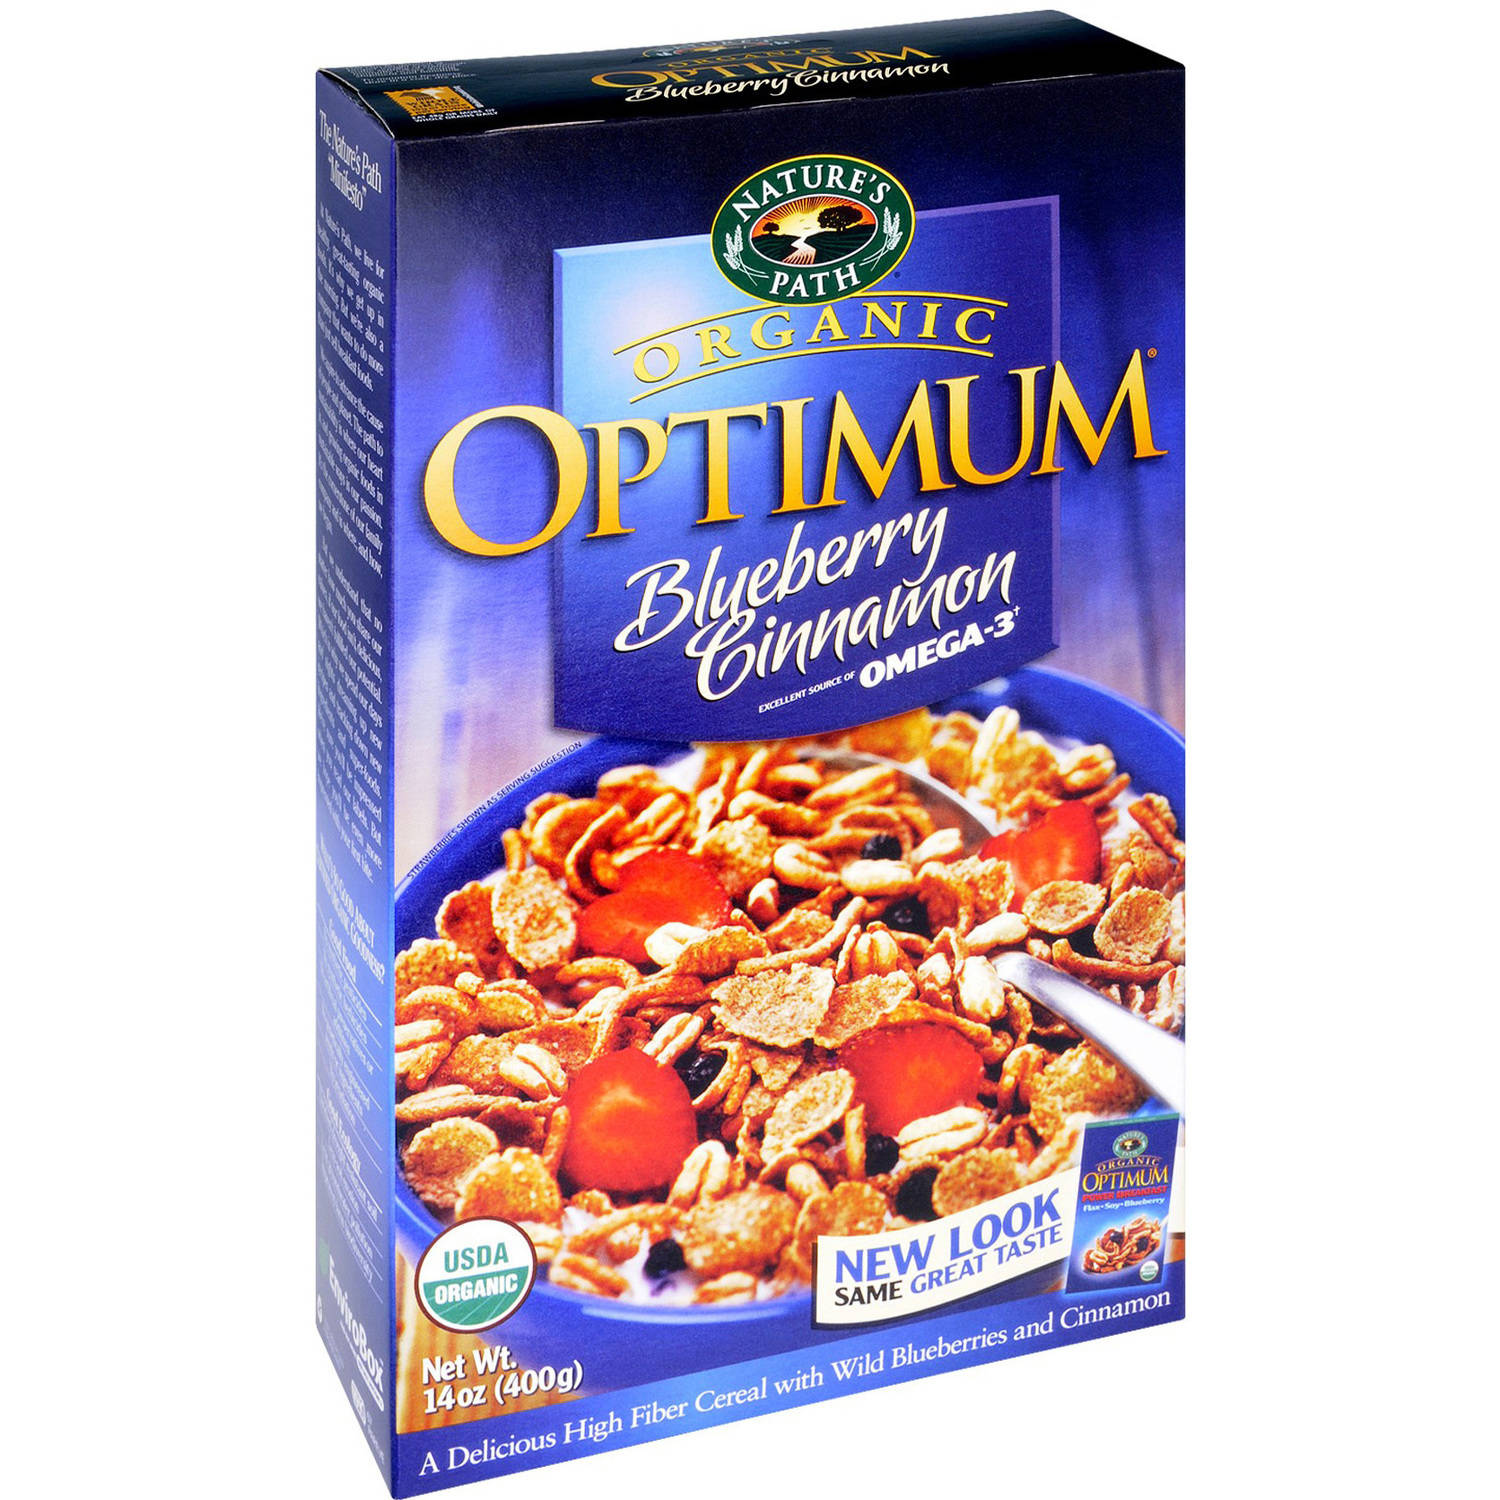 Nature's Path Organic Optimum Blueberry Cinnamon Cereal, 14 oz, (Pack of 12)